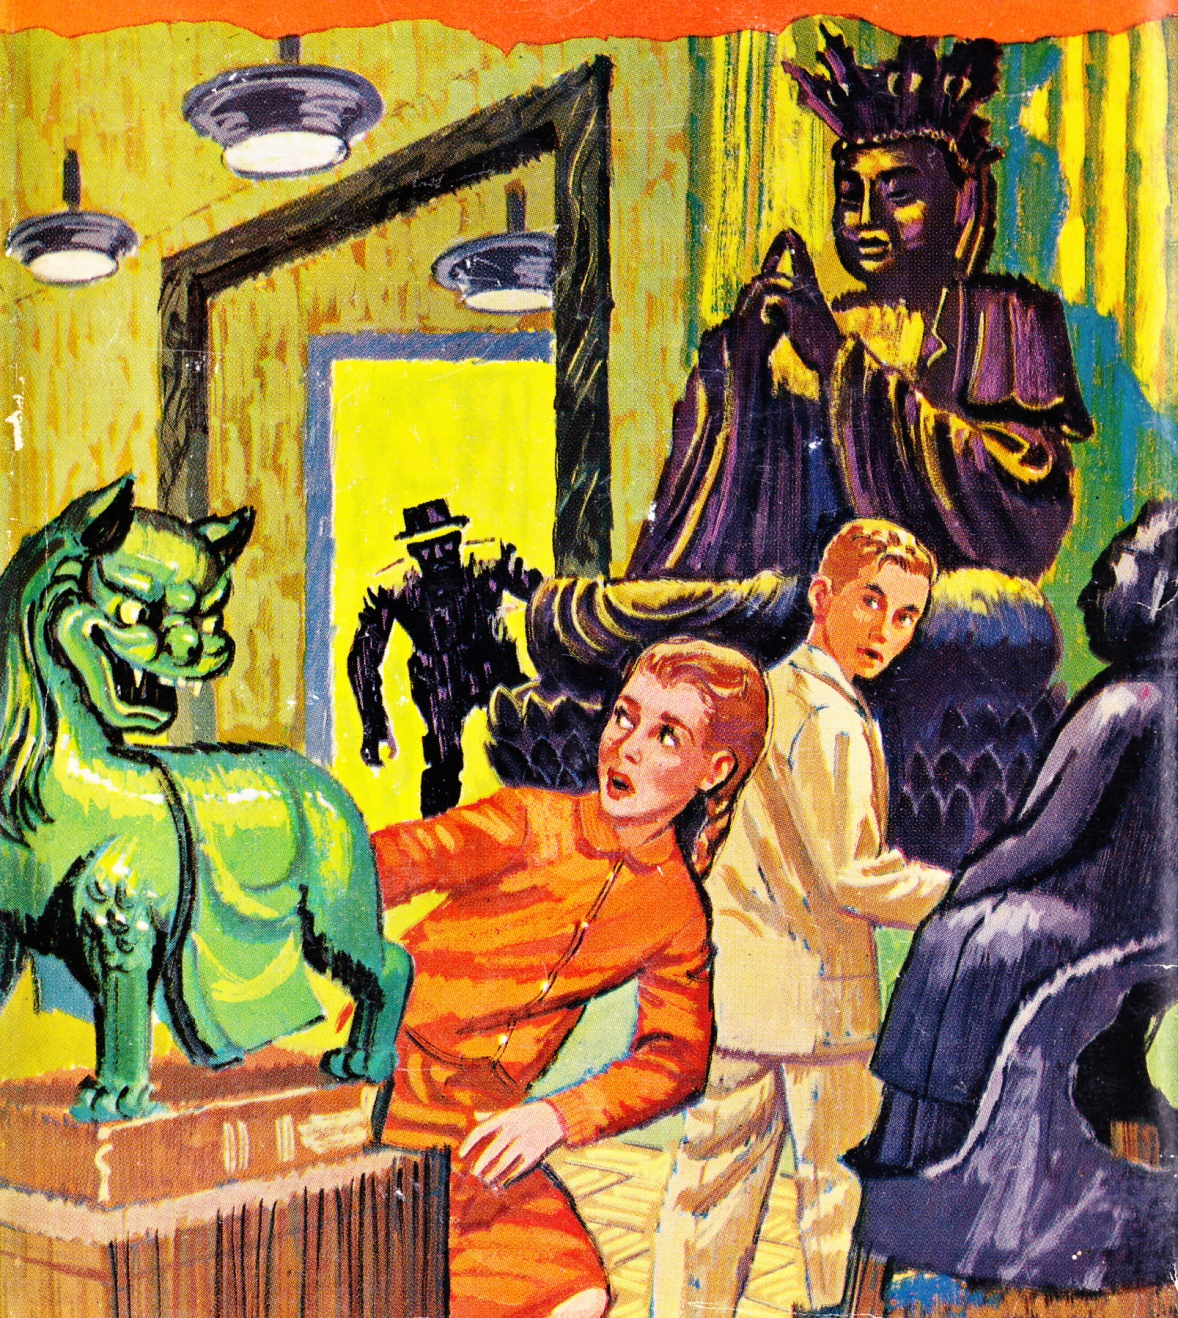 C:\Users\Robert\Documents\CARTOONING ILLUSTRATION ANIMATION\IMAGE BY CARTOONIST\C\COLLINS Gord, Mystery Of The Missing Emerald, 1963, fc.jpg